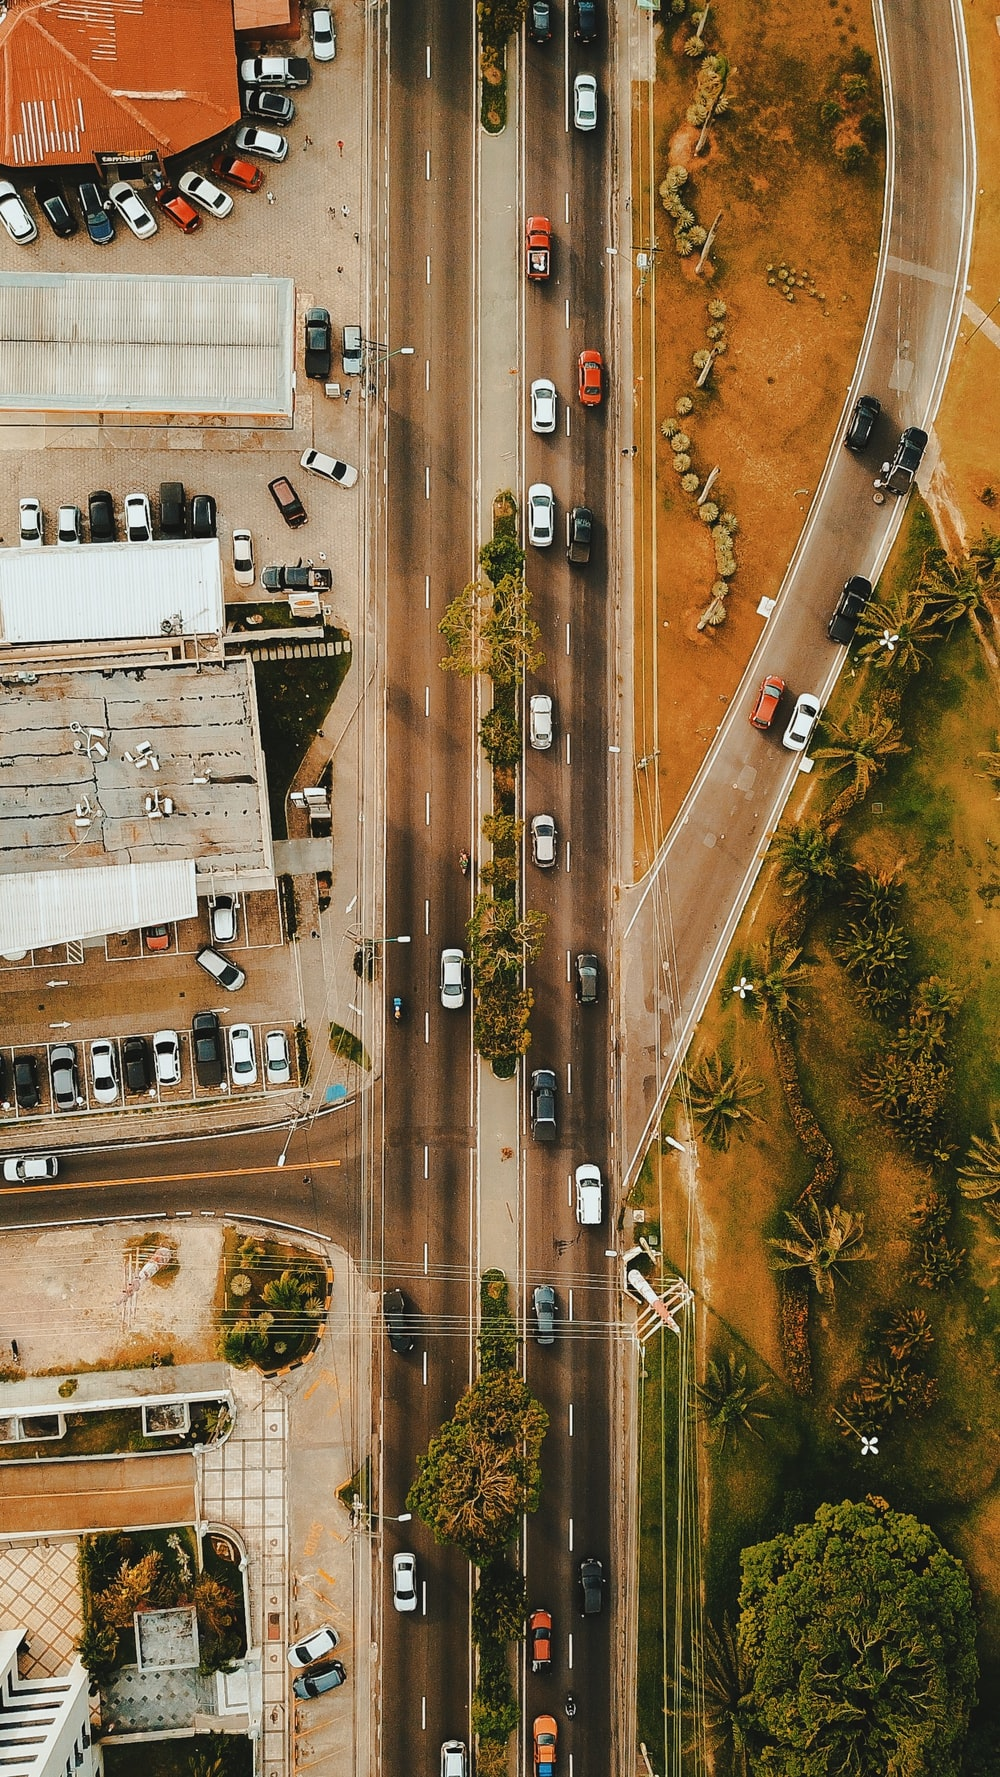 Drone View Of Road Pictures Download Free Images On Unsplash